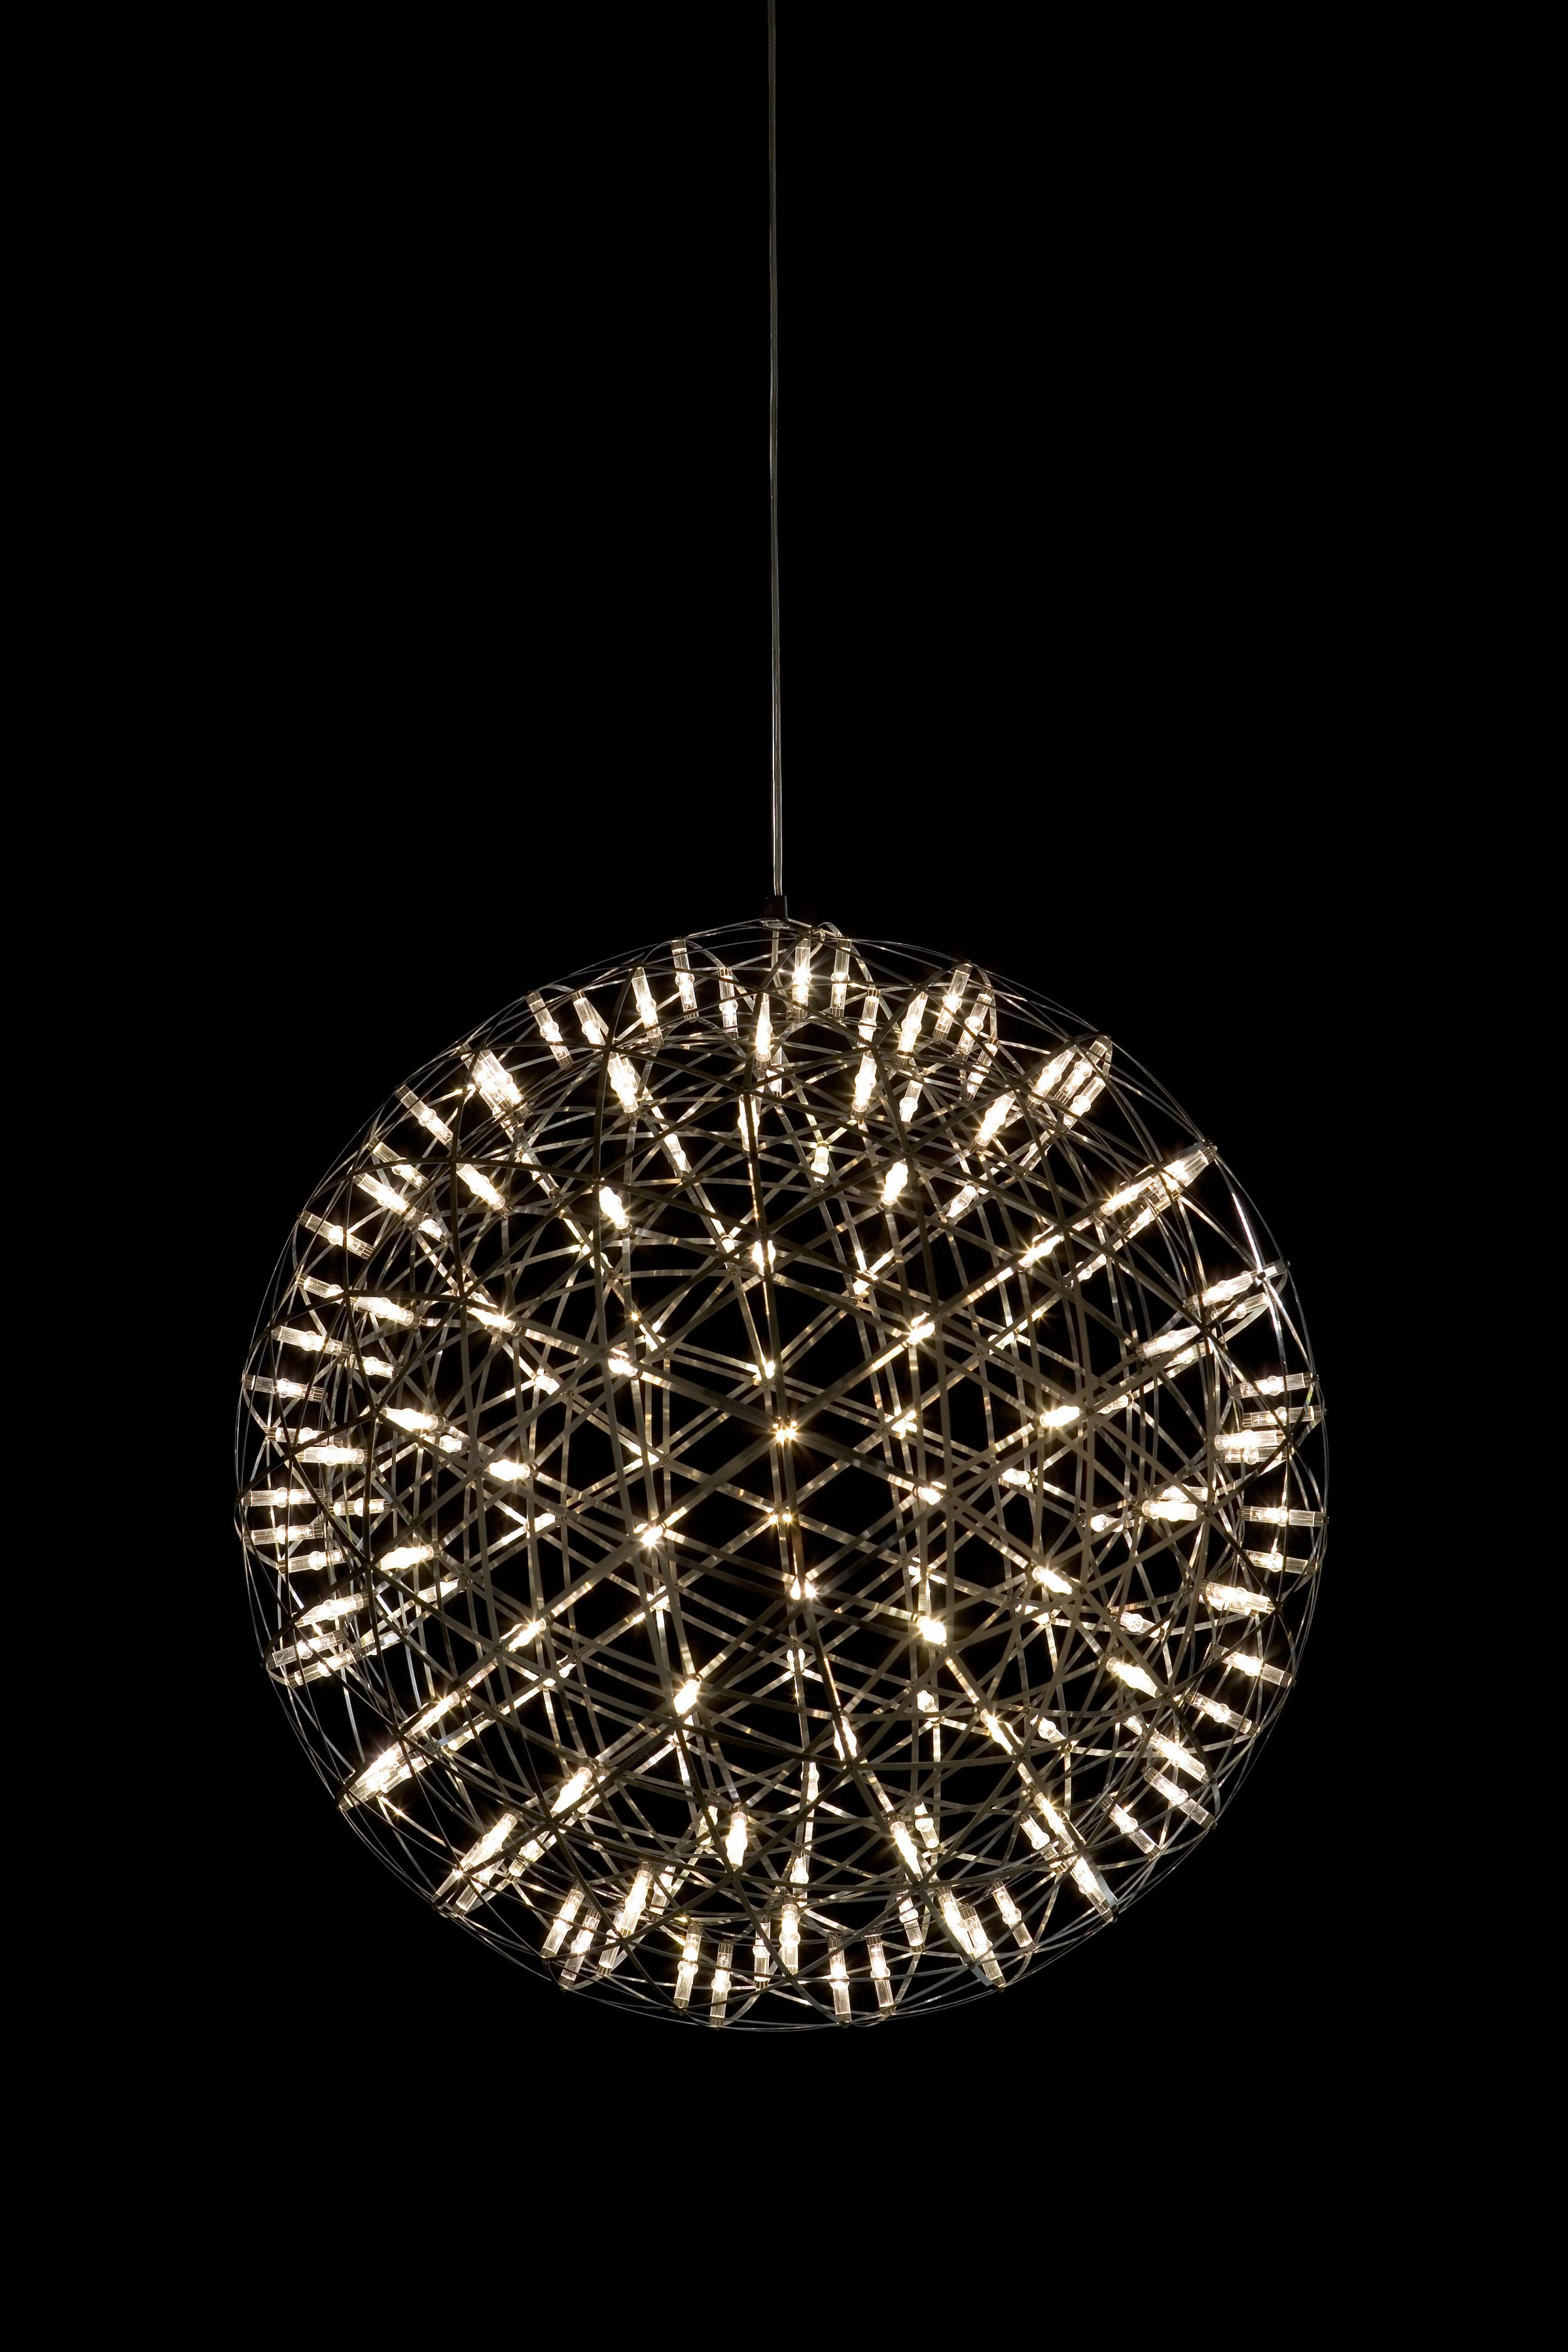 Moooi hang light pendant lamp by marcel wanders stardust - Raimond R43 Suspended Lamp Dimmable